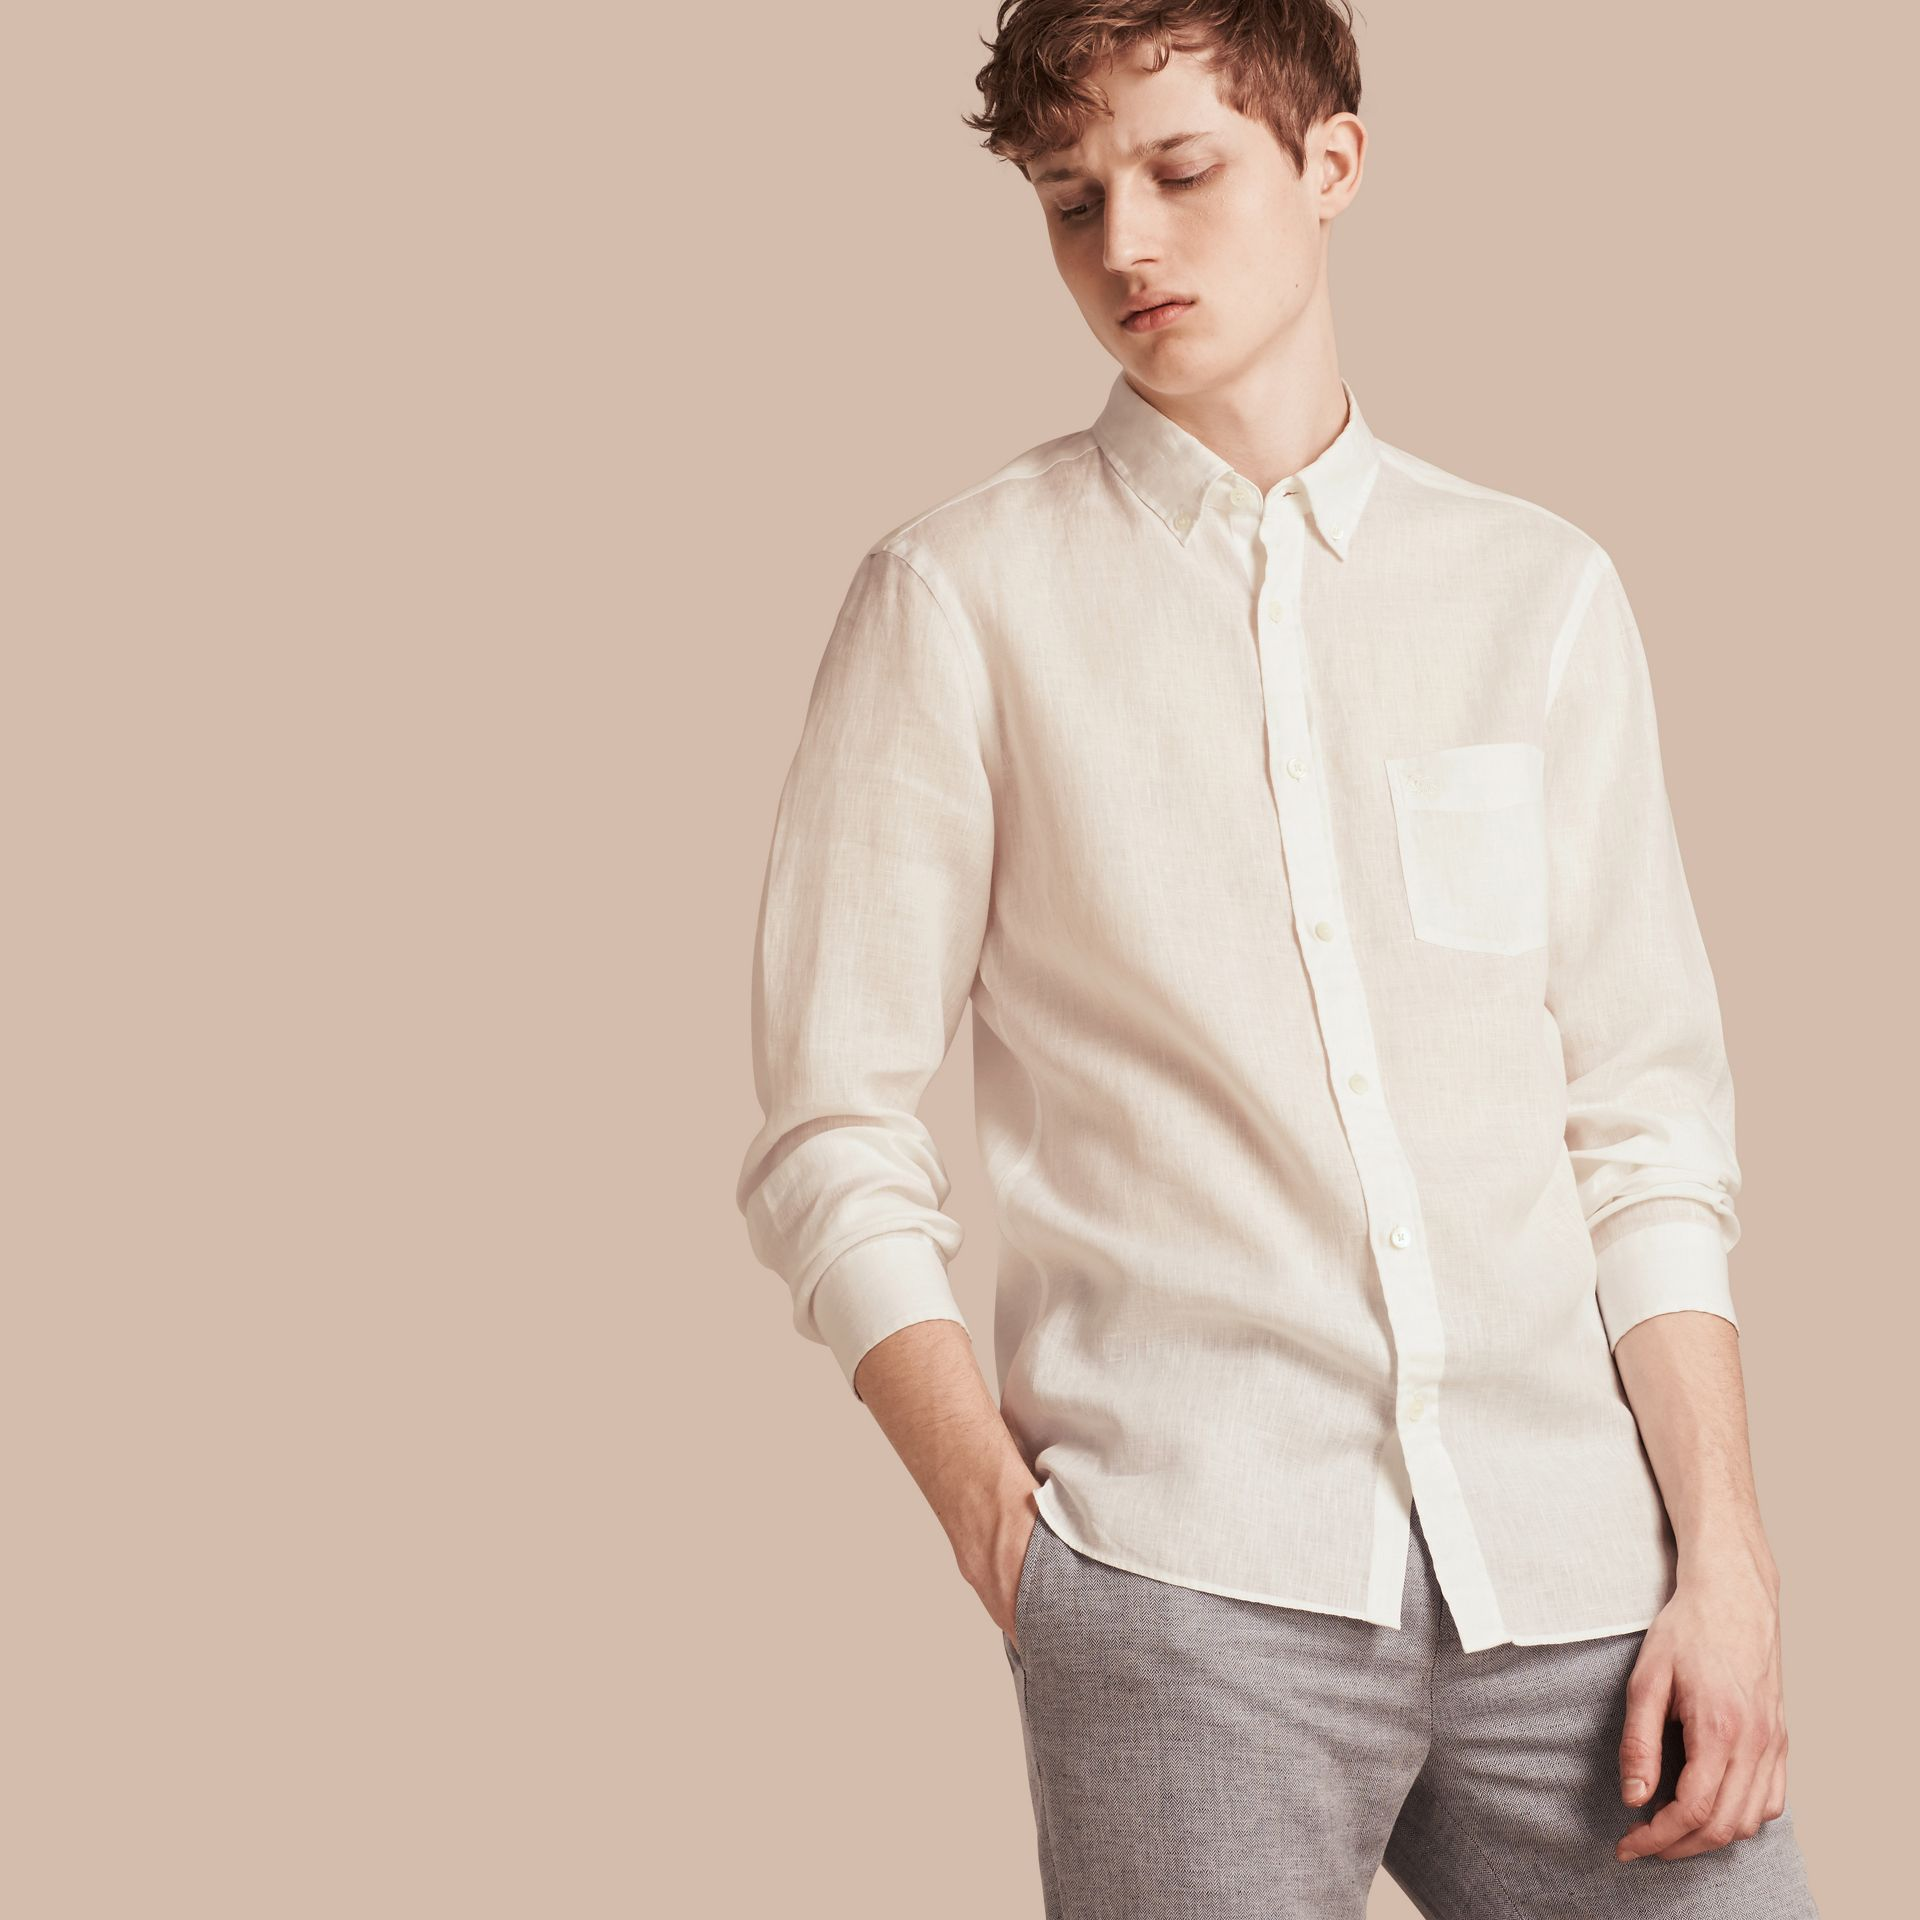 White Button-down Collar Linen Shirt White - gallery image 1